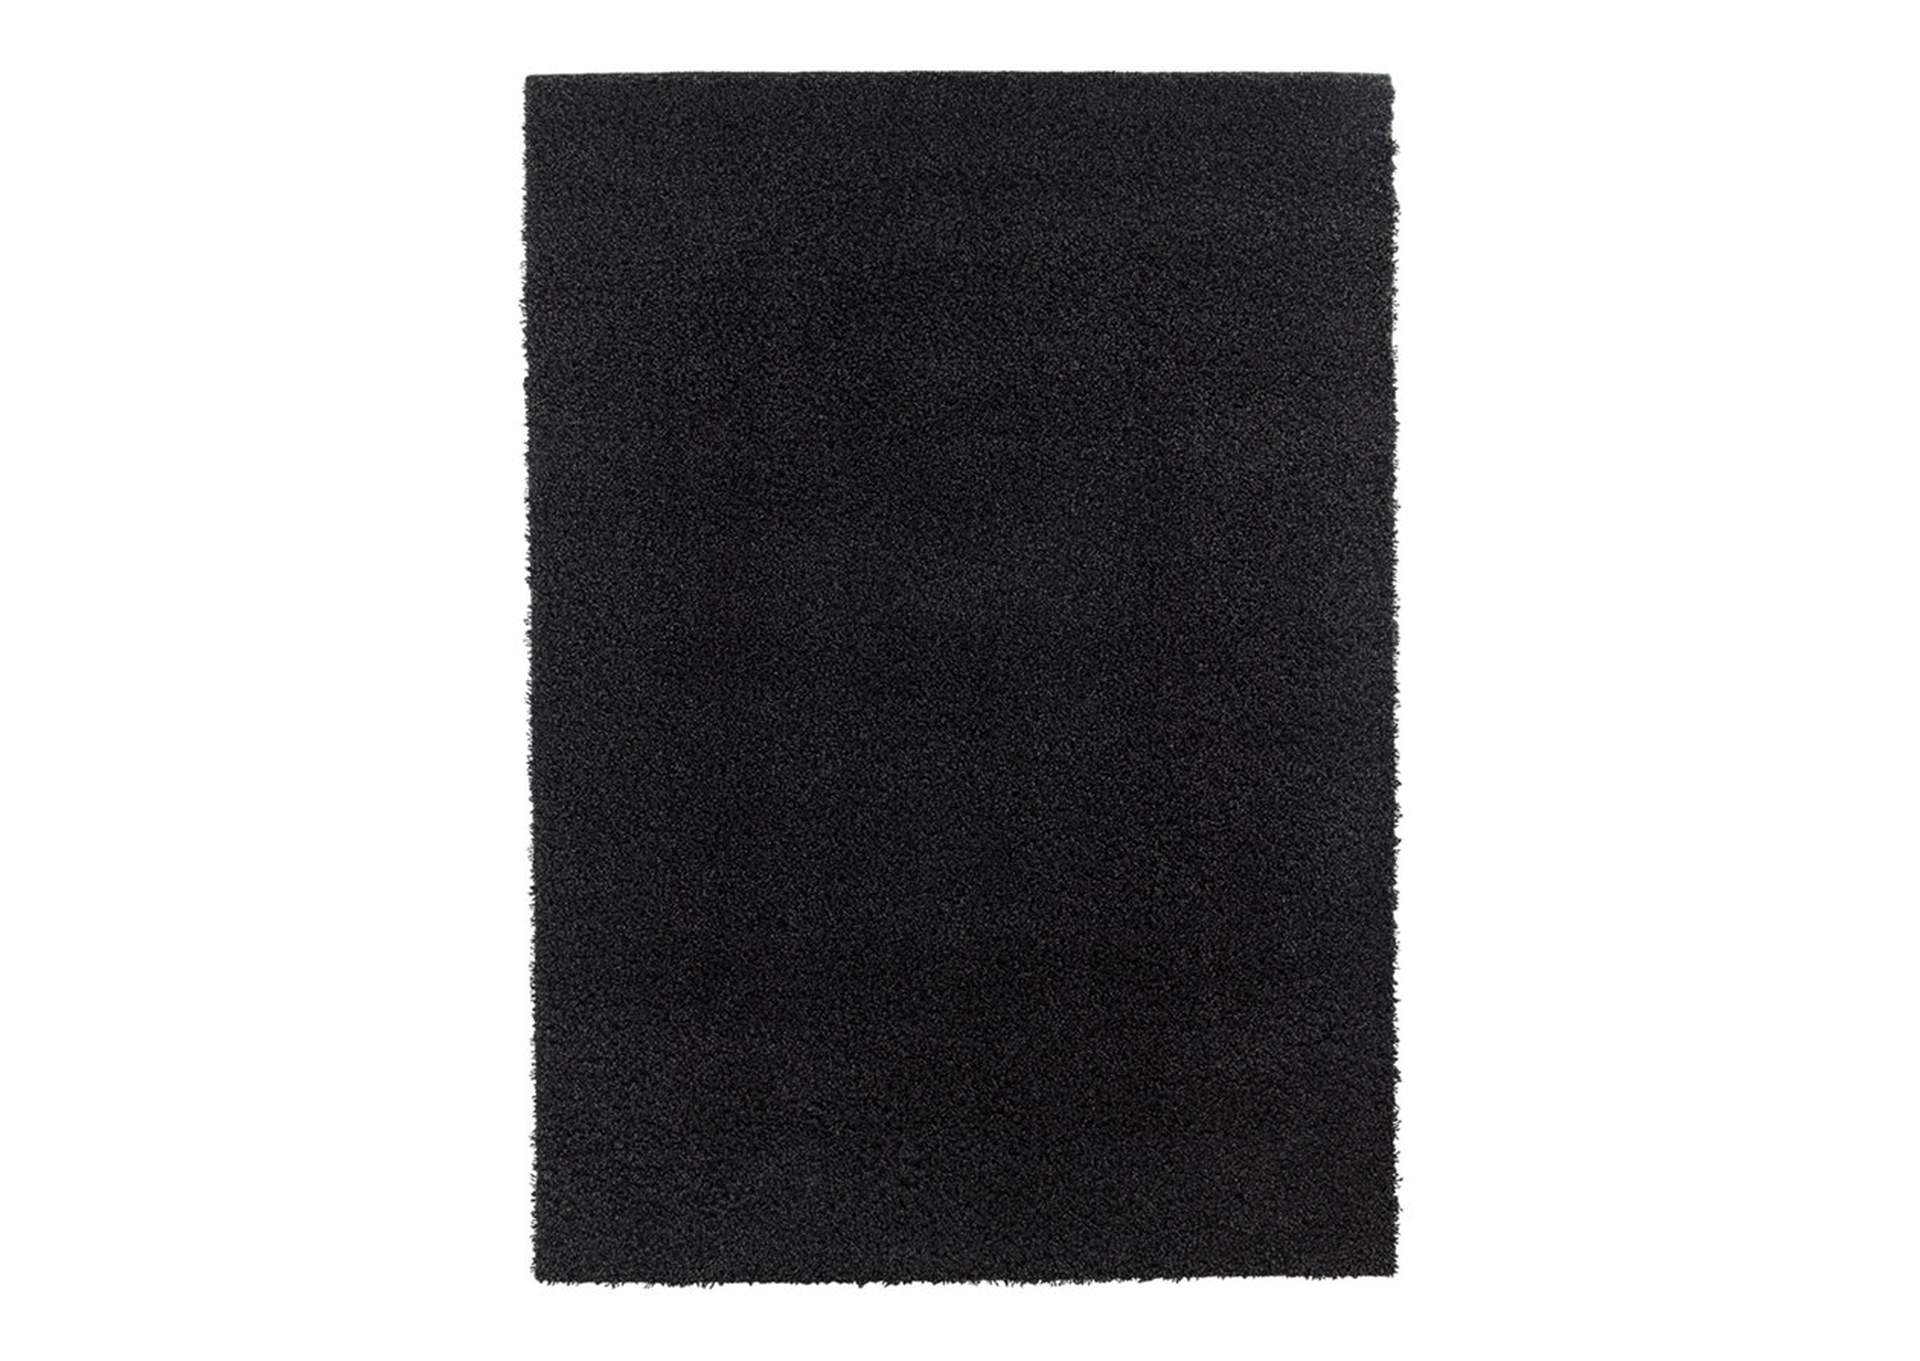 Caci Charcoal Medium Rug,Signature Design By Ashley